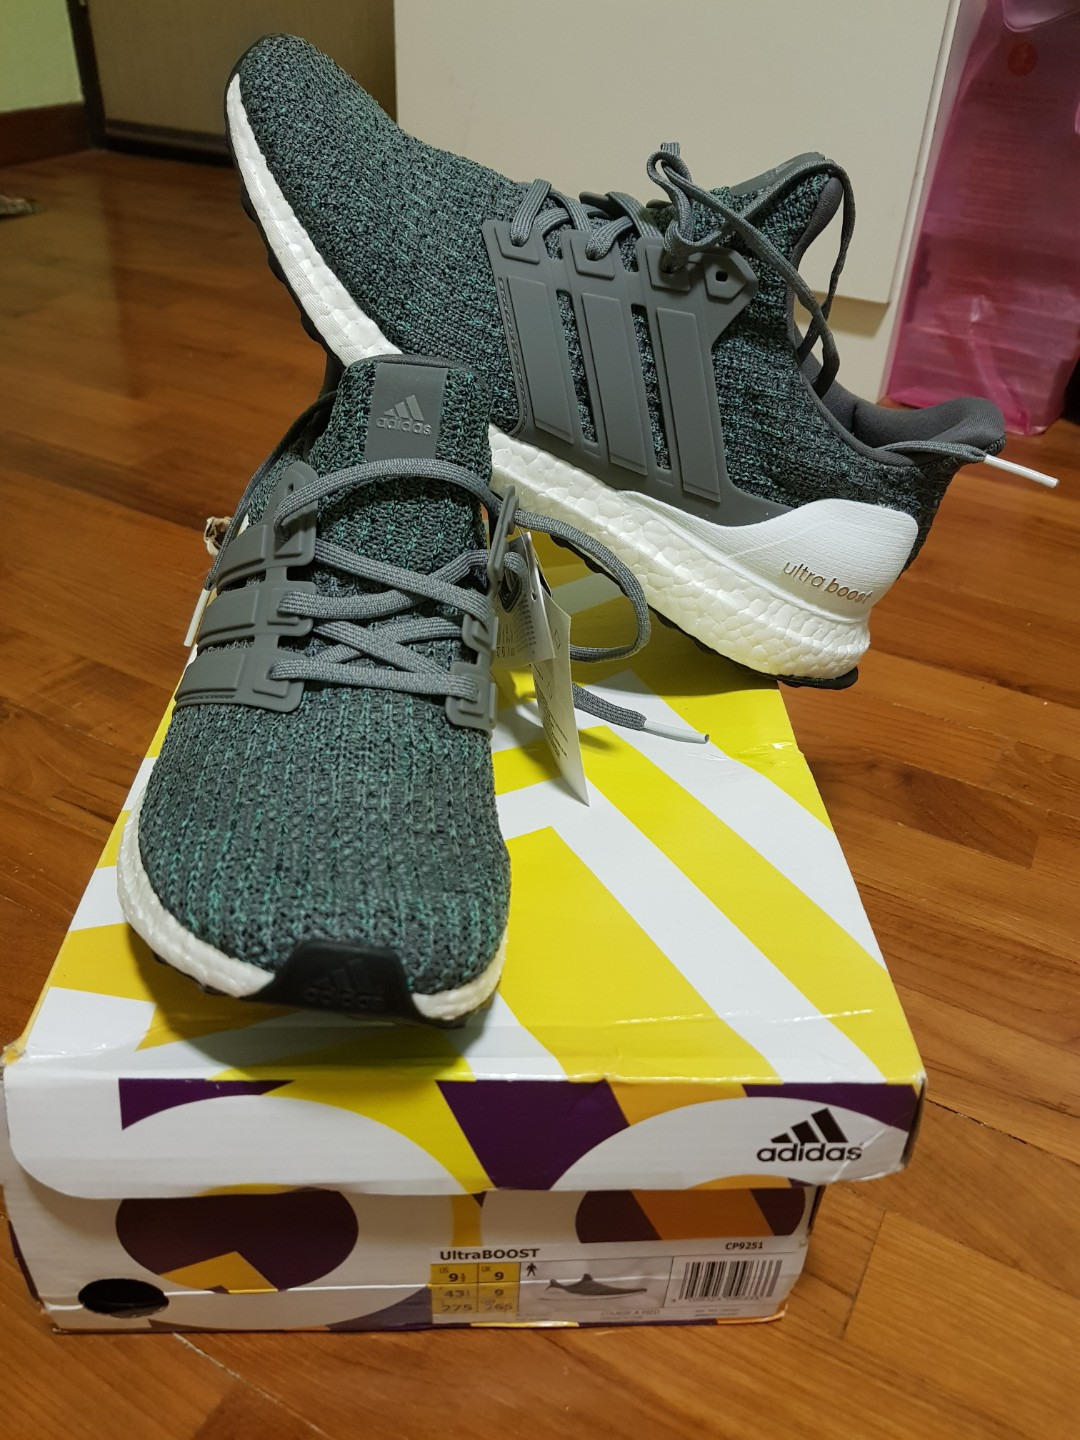 BN Adidas Ultra Boost UK 9 for sale 6097f1144